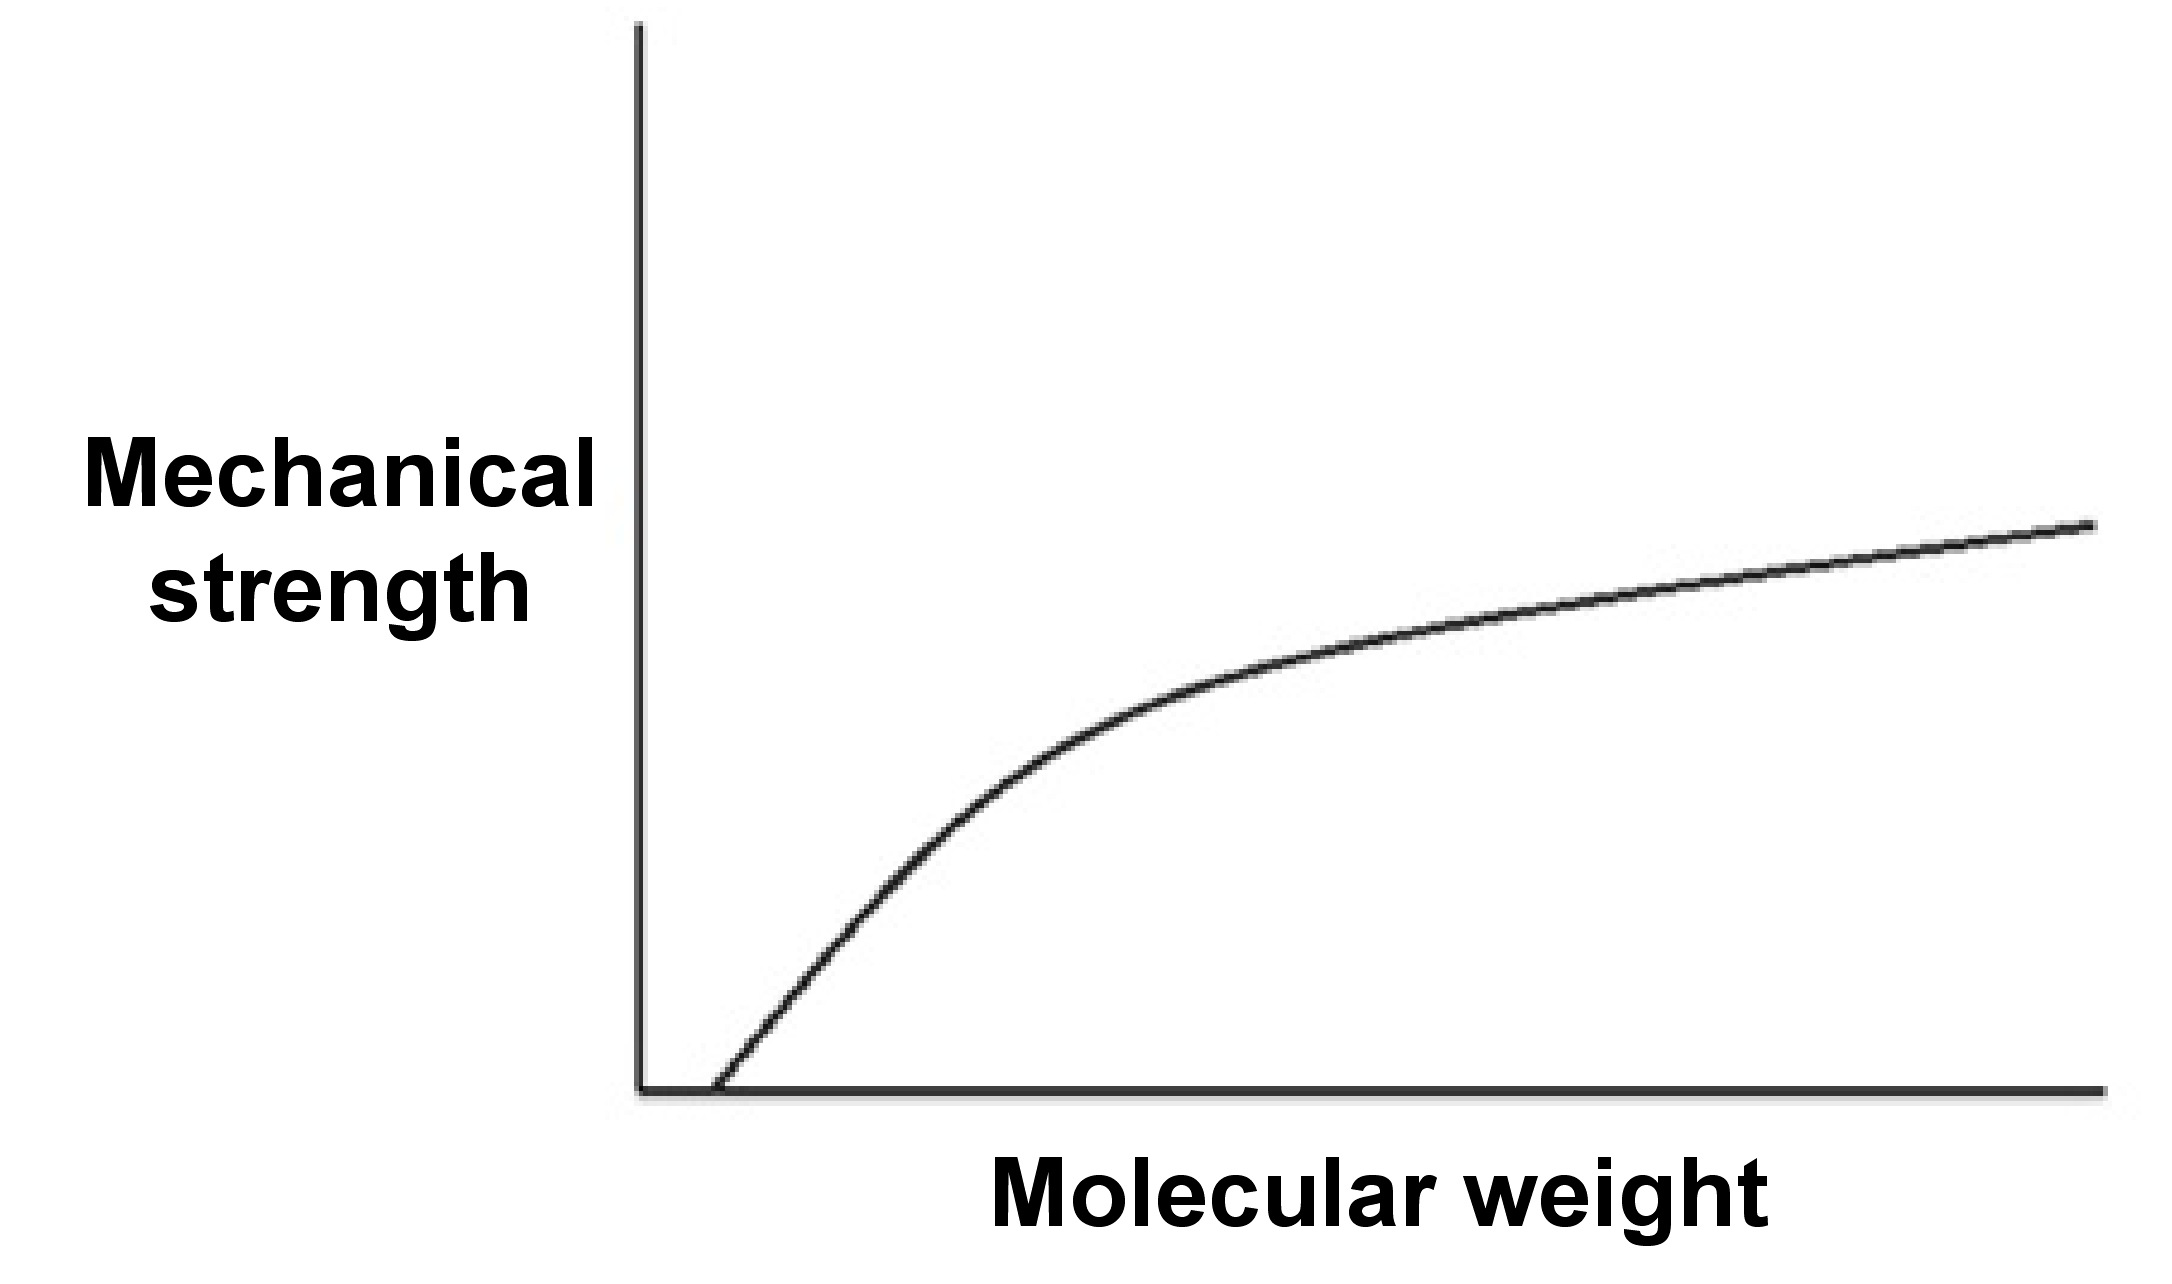 A diagram of the typical curve associating mechanical strength and molecular weight